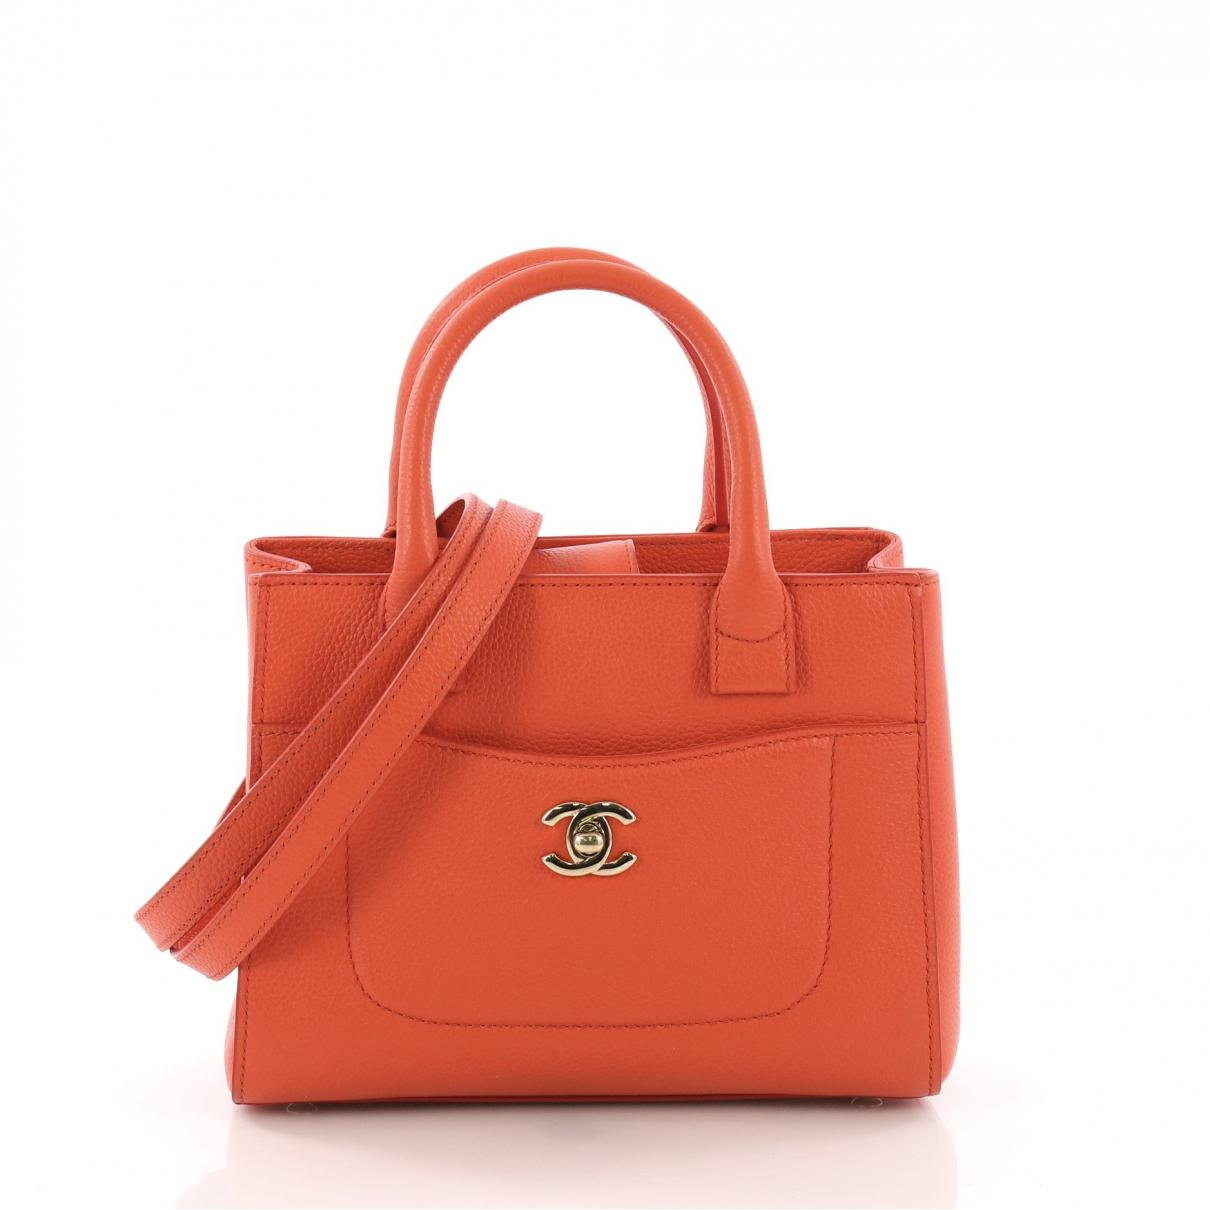 a3cfd7bb3727 Lyst - Chanel Executive Orange Leather Handbag in Orange